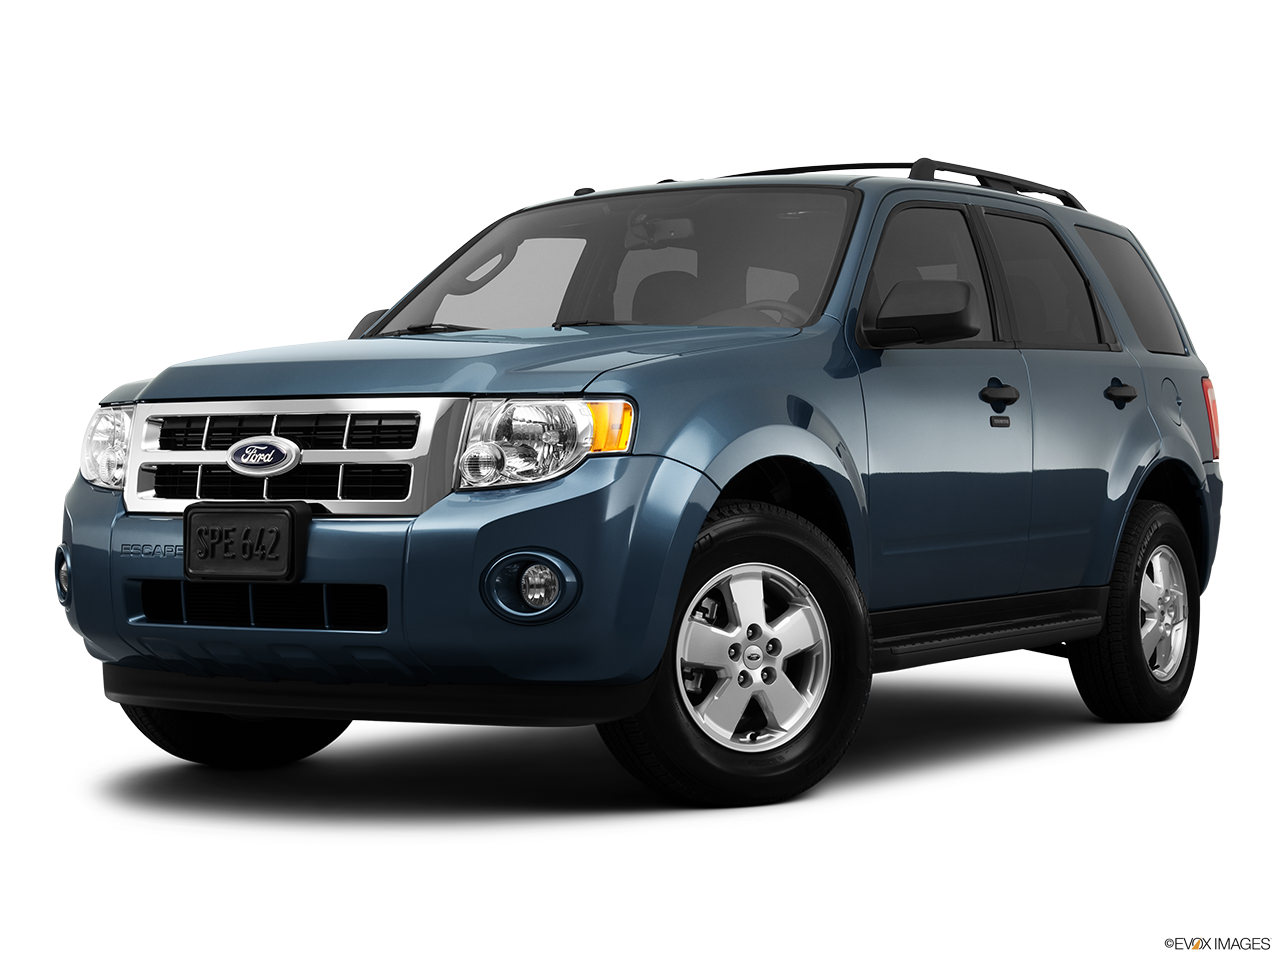 a buyer's guide to the 2012 ford escape | yourmechanic advice